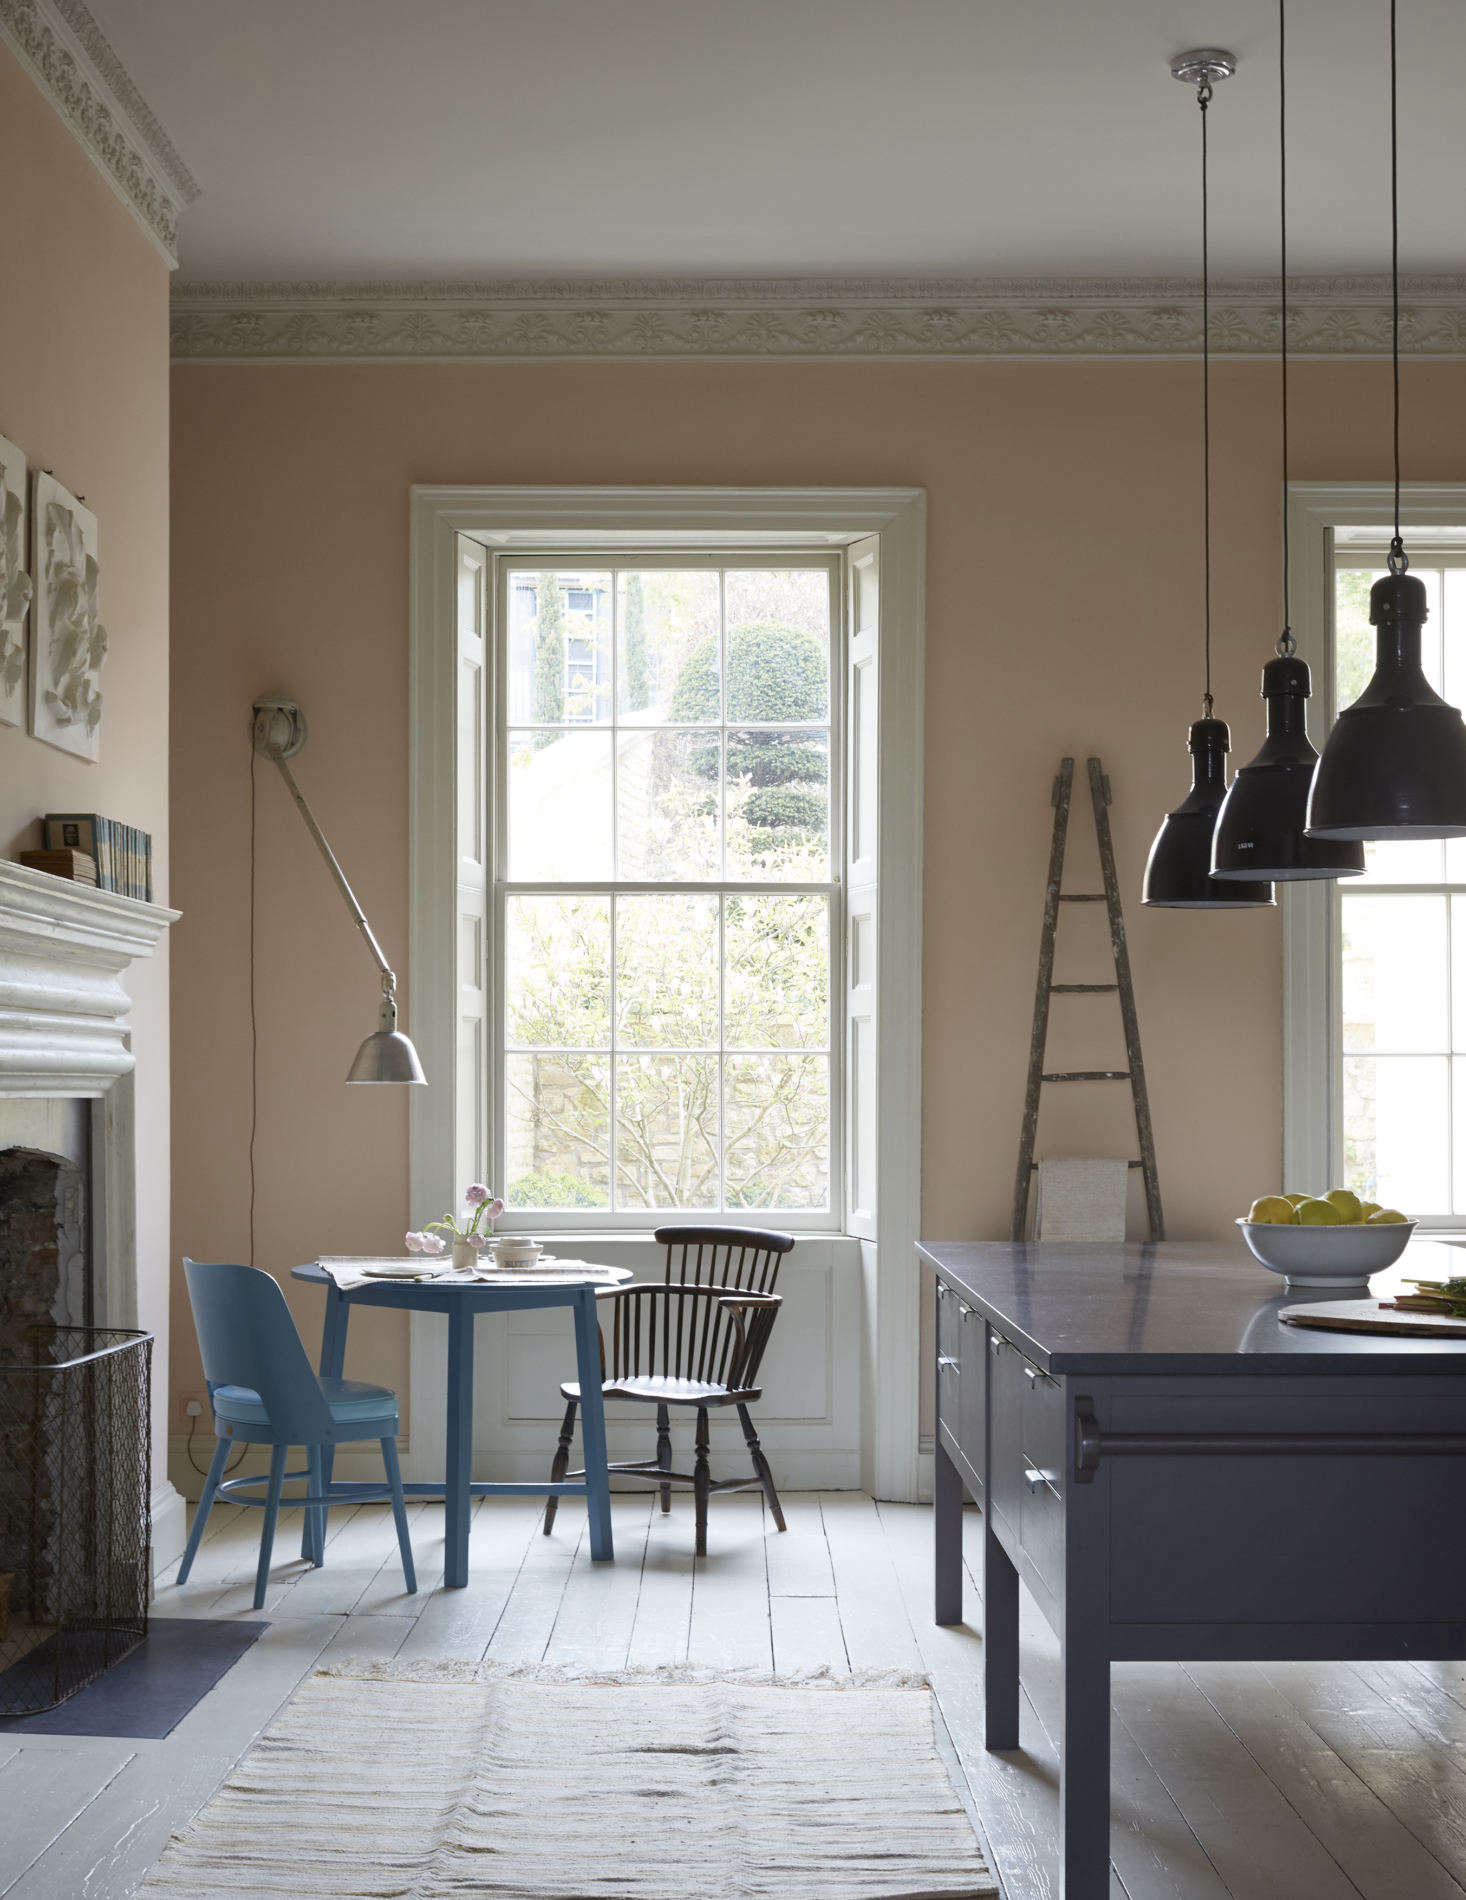 A Howe table and chair in a dose of custom blue paint is an unexpected addition to the purple and pink palette.Photography by Paul Massey, courtesy of Howe from'Mamma Mia' Music Producer Nick Gilpin's Stylishly Revived Georgian Manse.